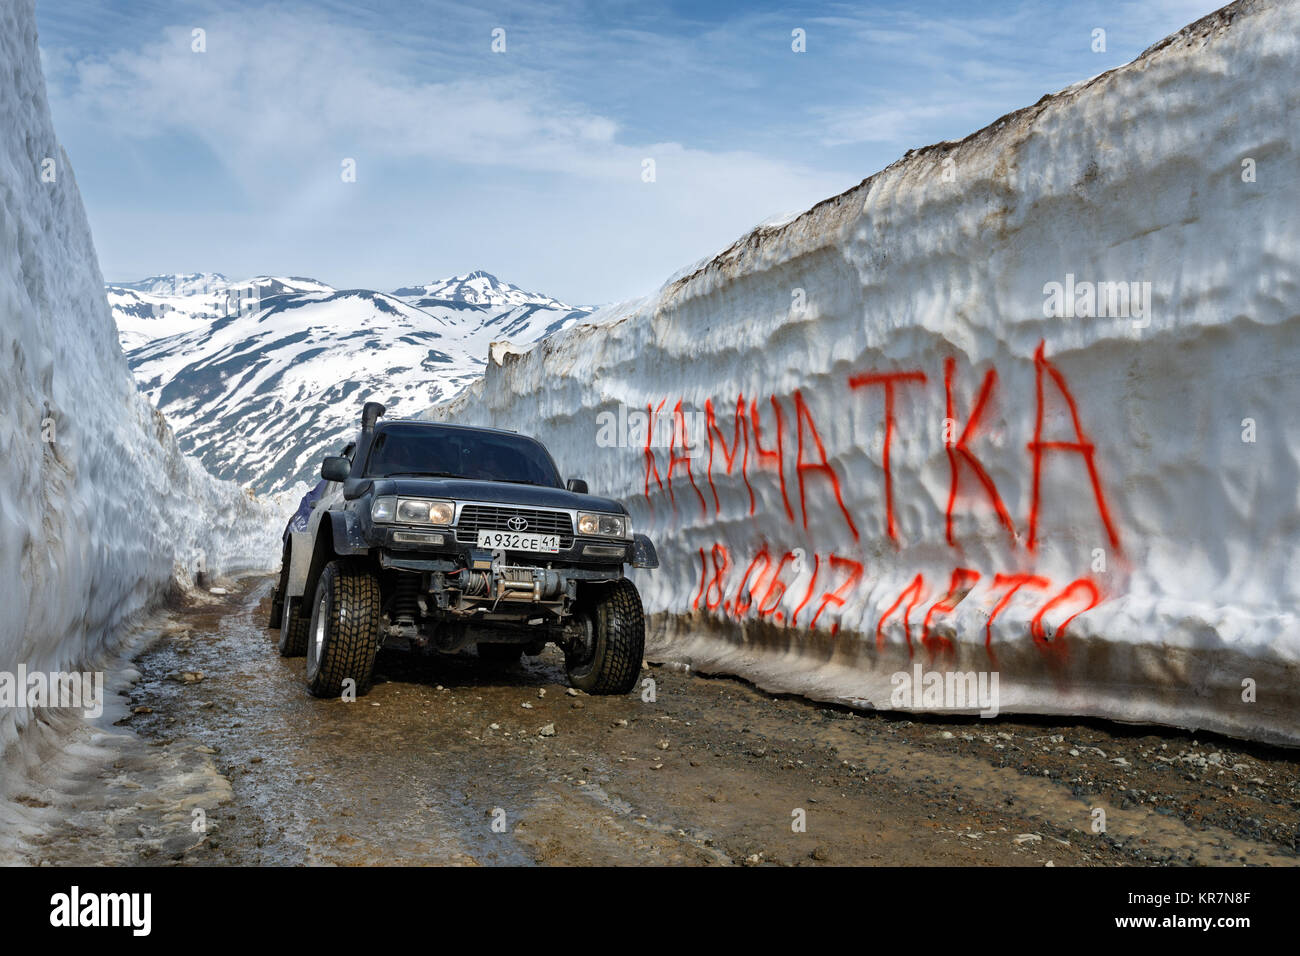 Kamchatka Peninsula: Japanese off-road expedition car Toyota Land Cruiser driving on mountain road in snow tunnel - Stock Image